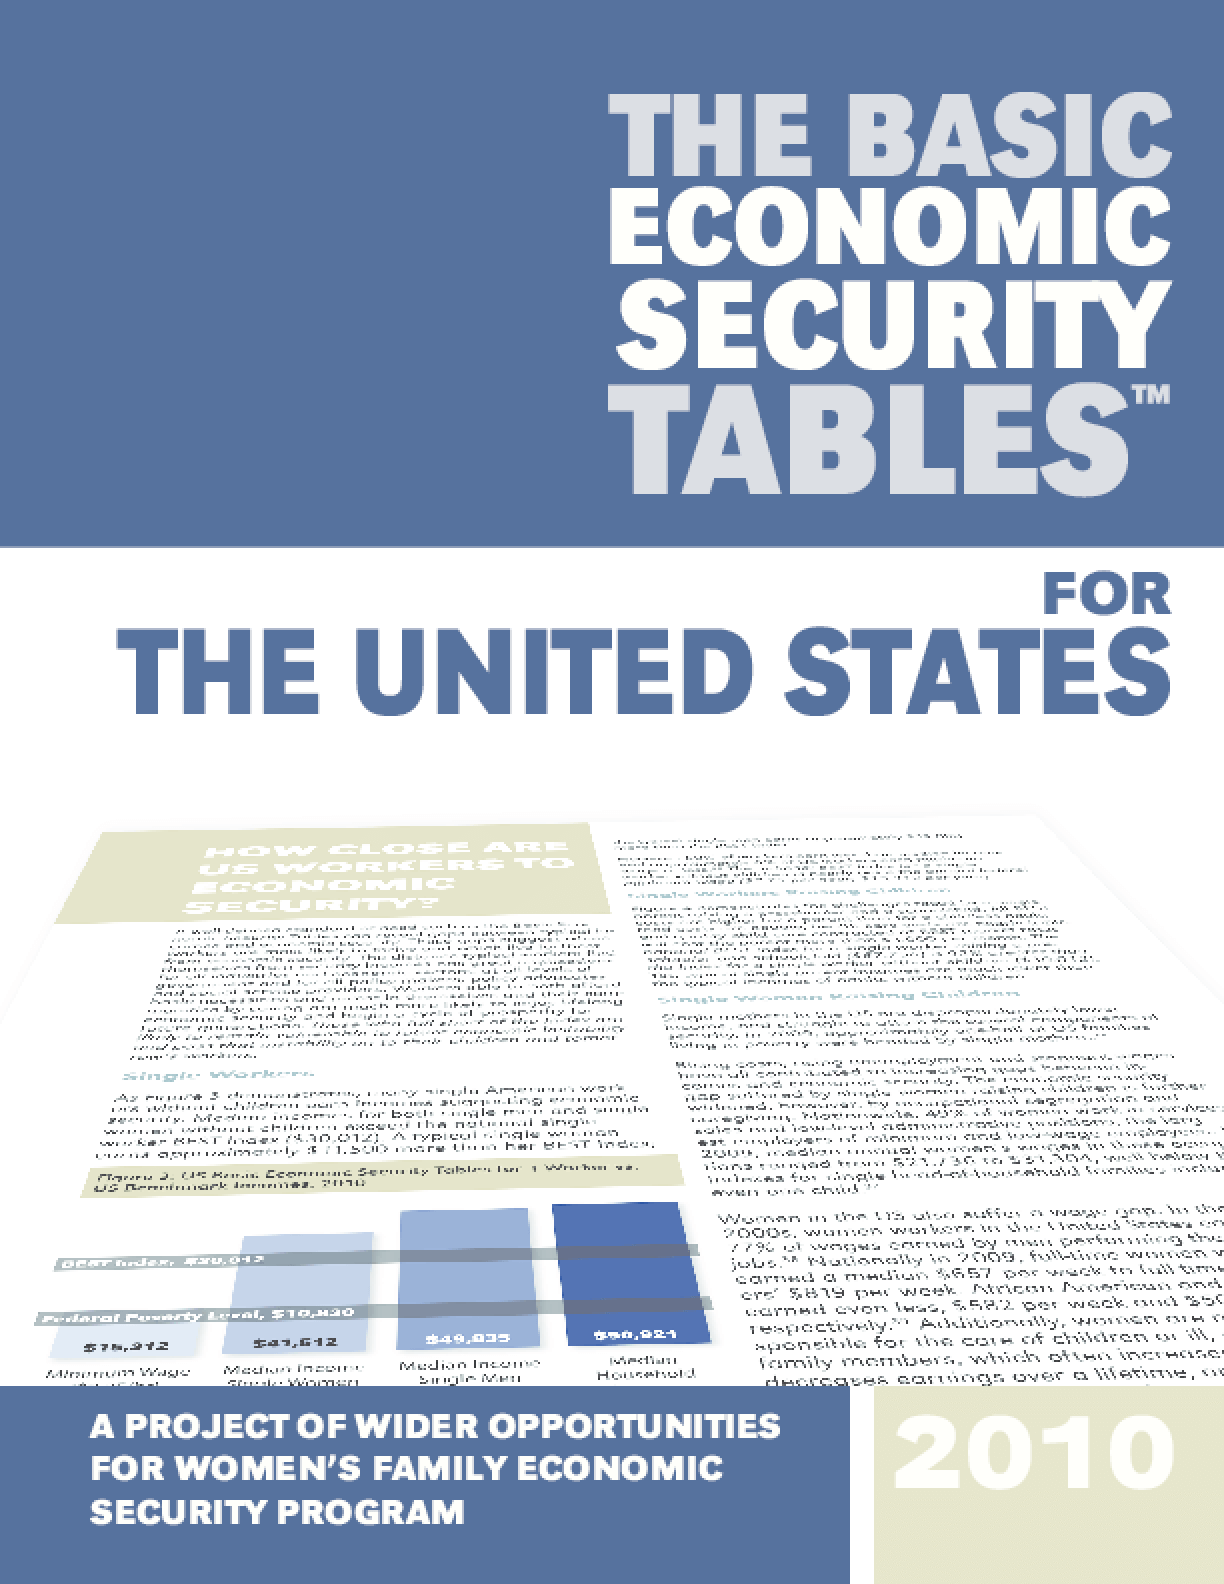 The Basic Economic Security Tables for the United States